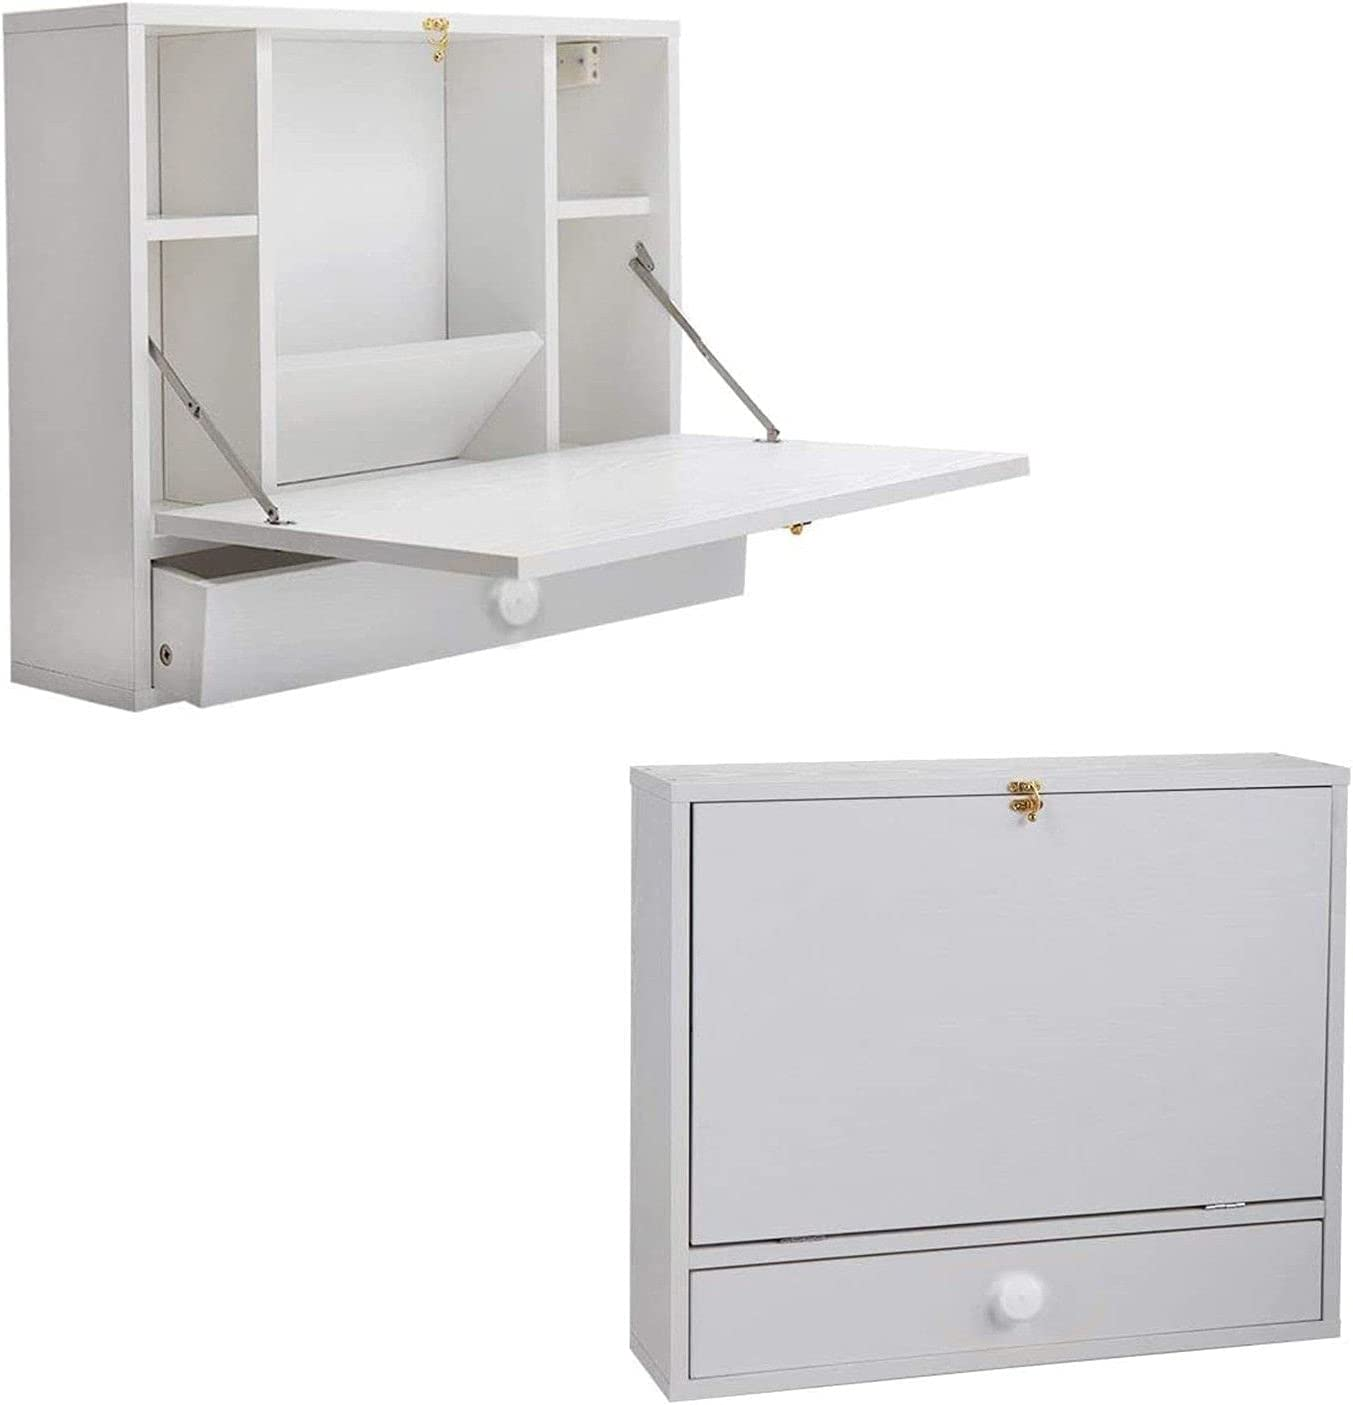 Wall Complete Free Popular overseas Shipping Mounted Desk Multifunctional Wal Space Floating Saving